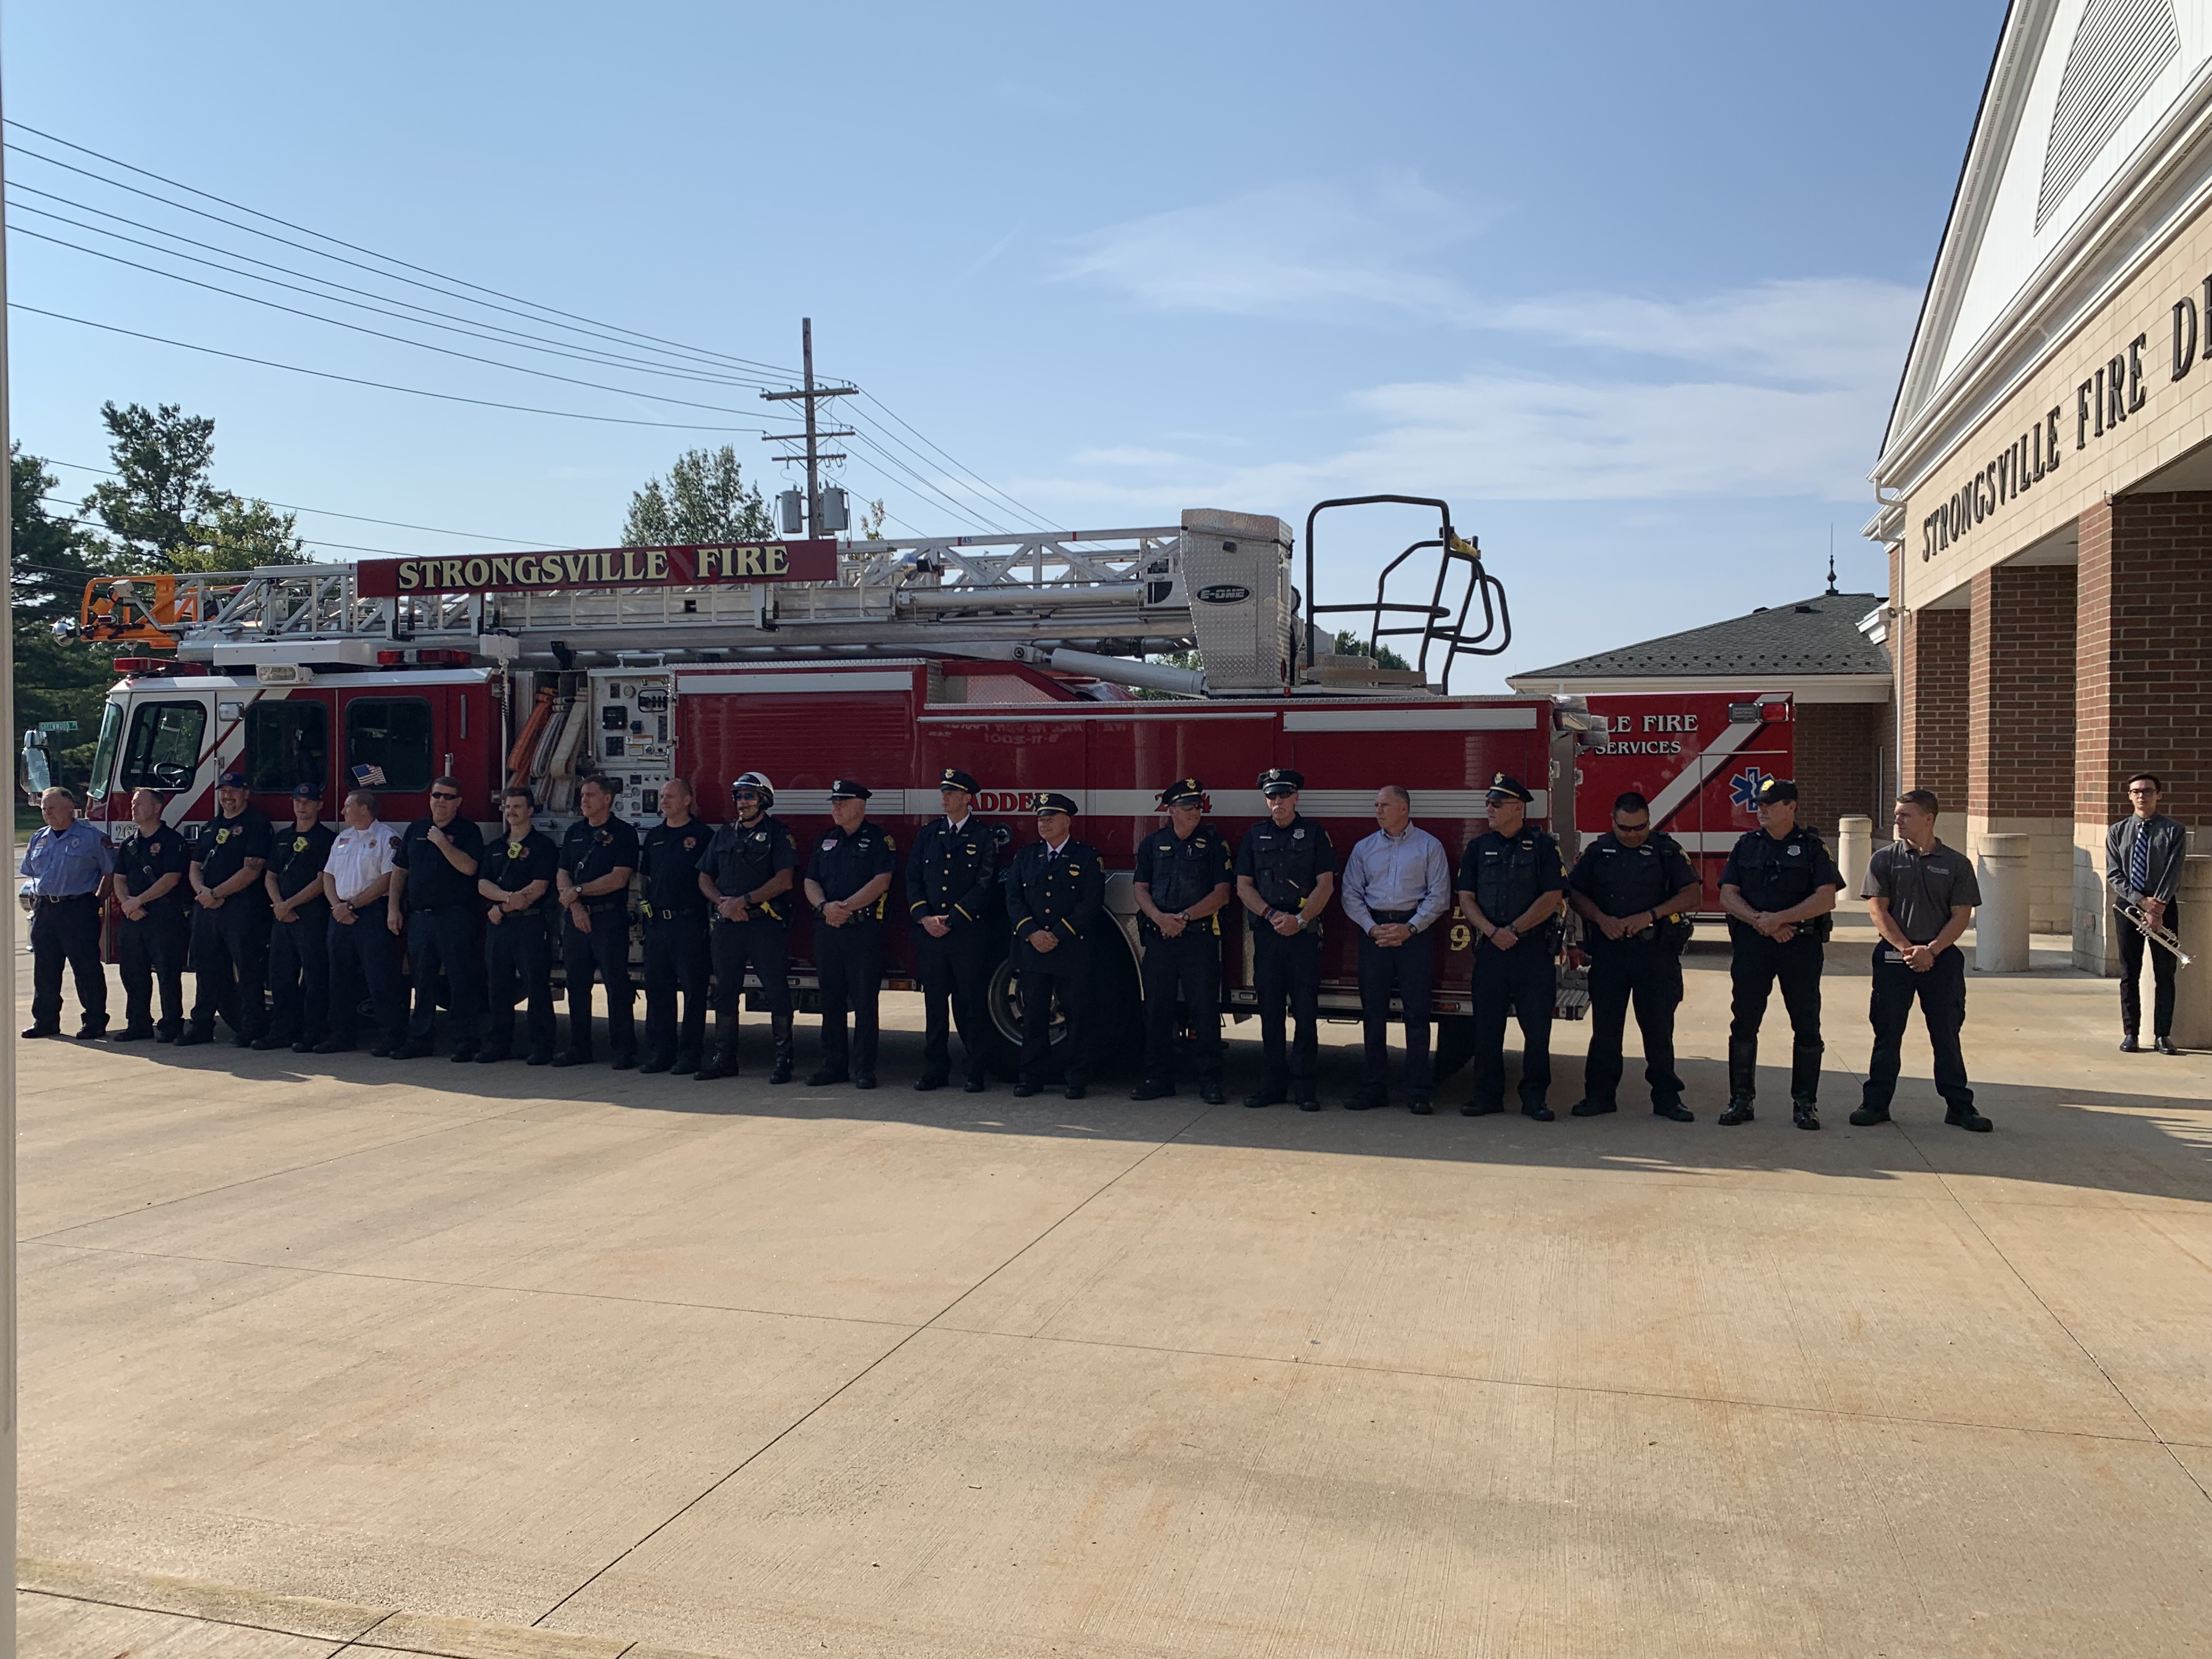 911 Ceremony at the Ward 4 Fire station